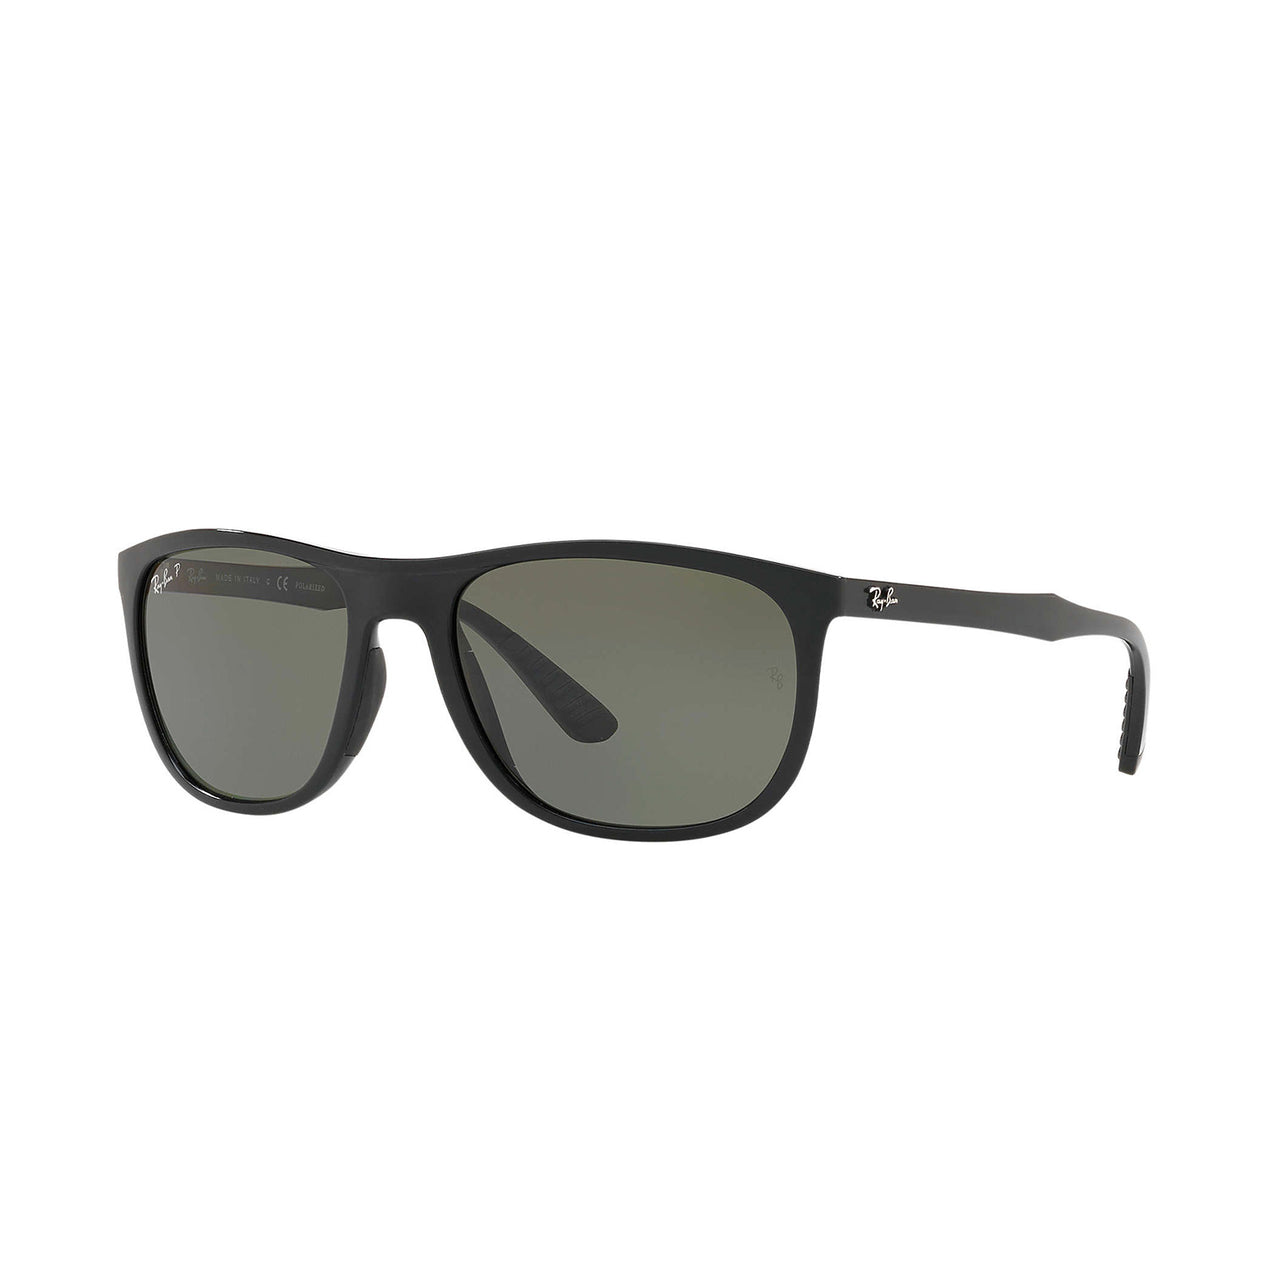 34ffdfbee3 Ray Ban Rb4291 - Black Frame - Green Classic G-15 Polarized Lens ...